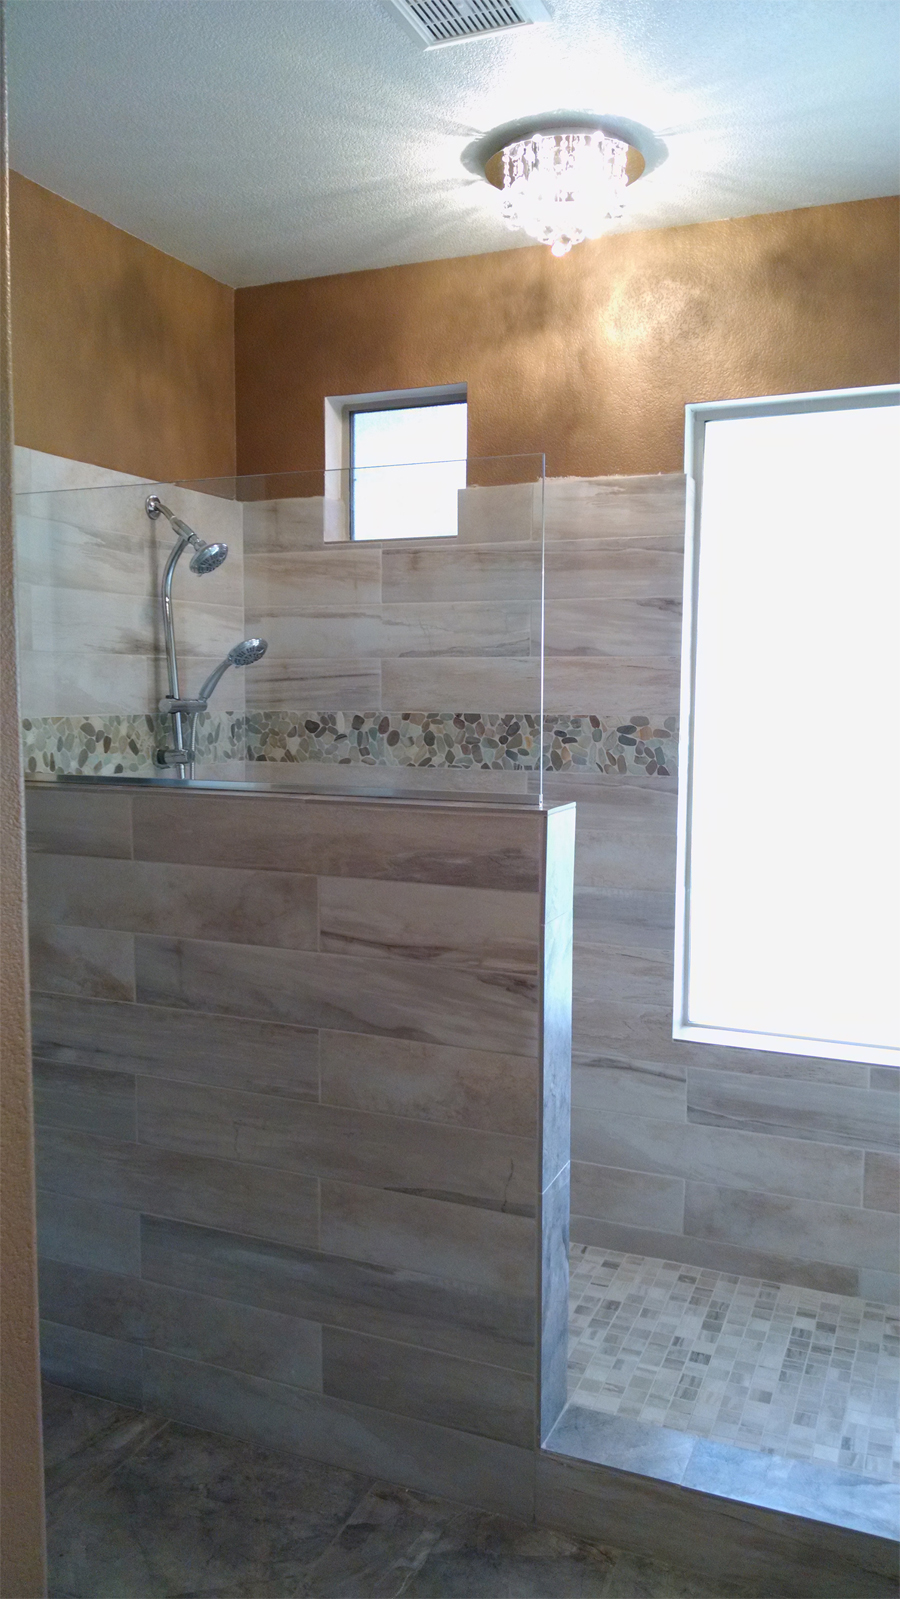 Phoenix Bathroom Remodel Endearing Home Remodeling Phoenix  Champion Remodeling Llc. Decorating Inspiration